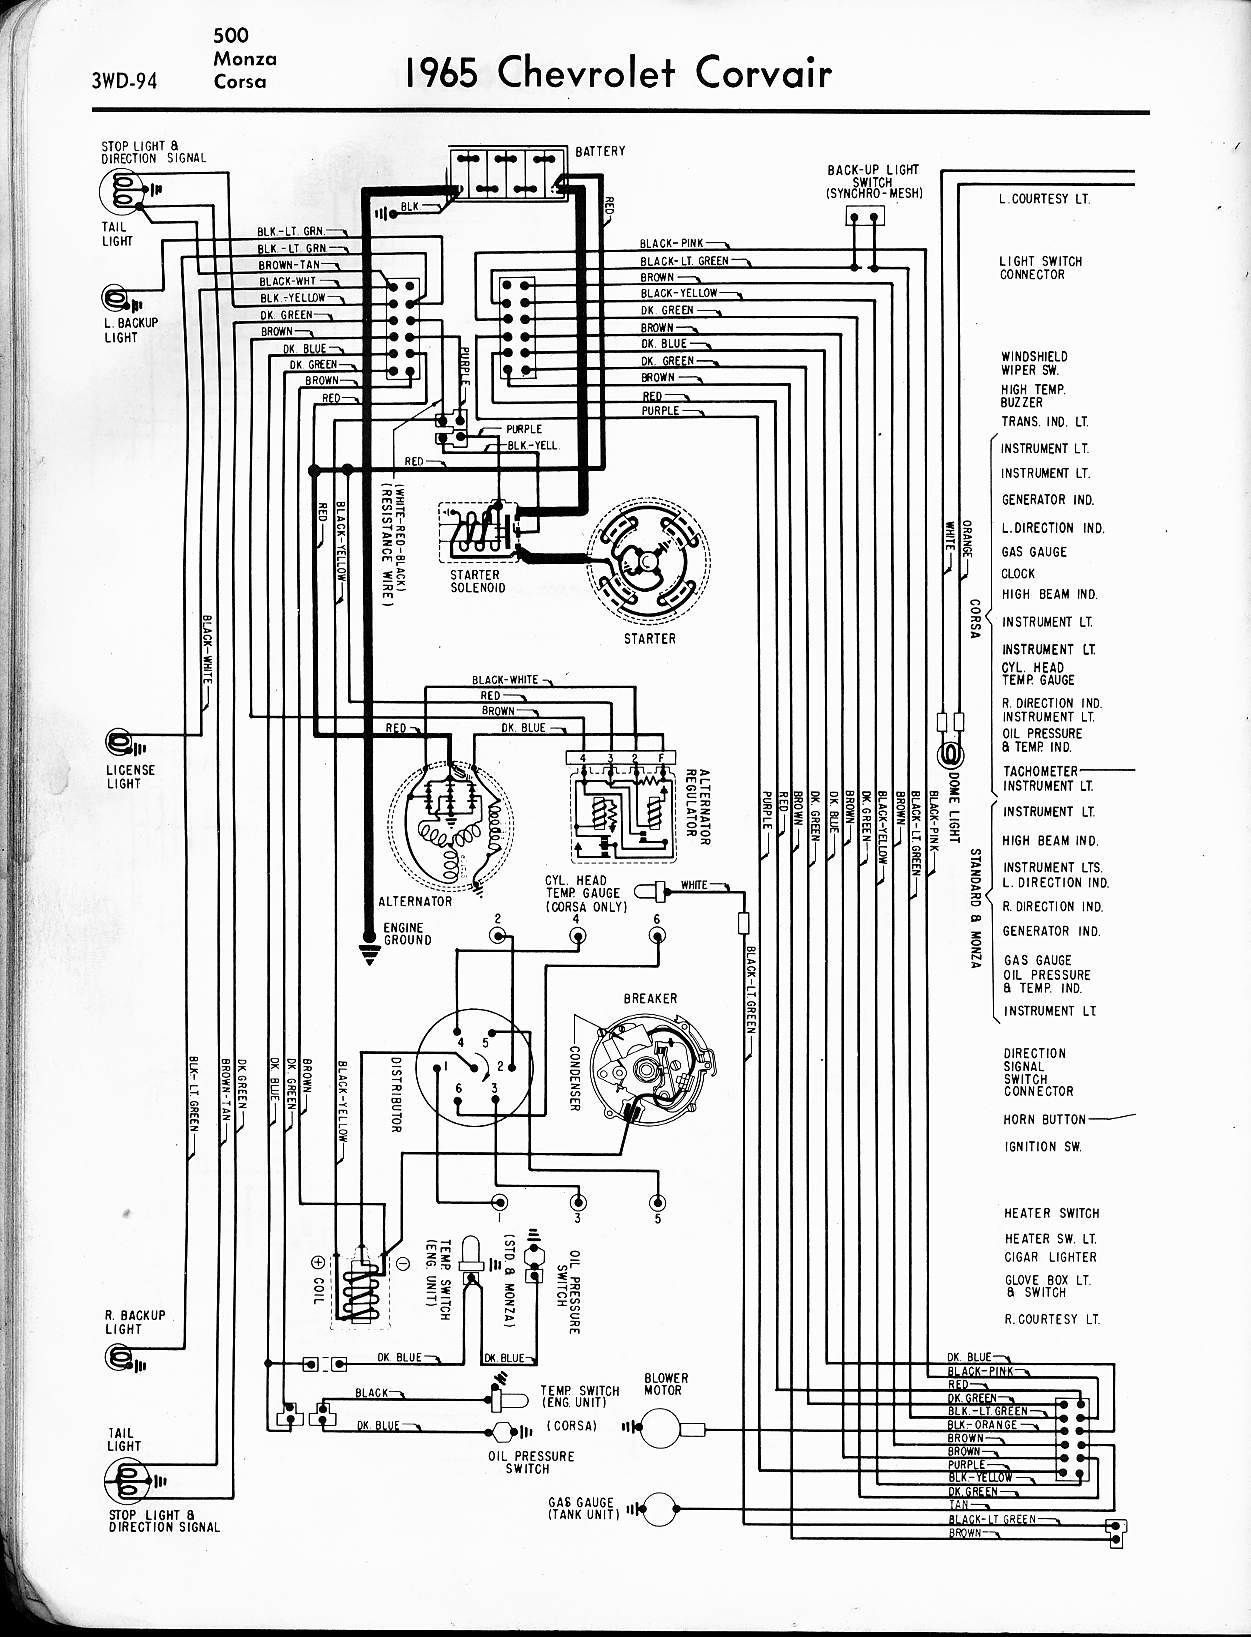 1966 Corvair Wiring Diagram Reinvent Your 66 Chevelle For Chevrolet Electrical Diagrams Rh Wiringforall Today 1965 Mustang